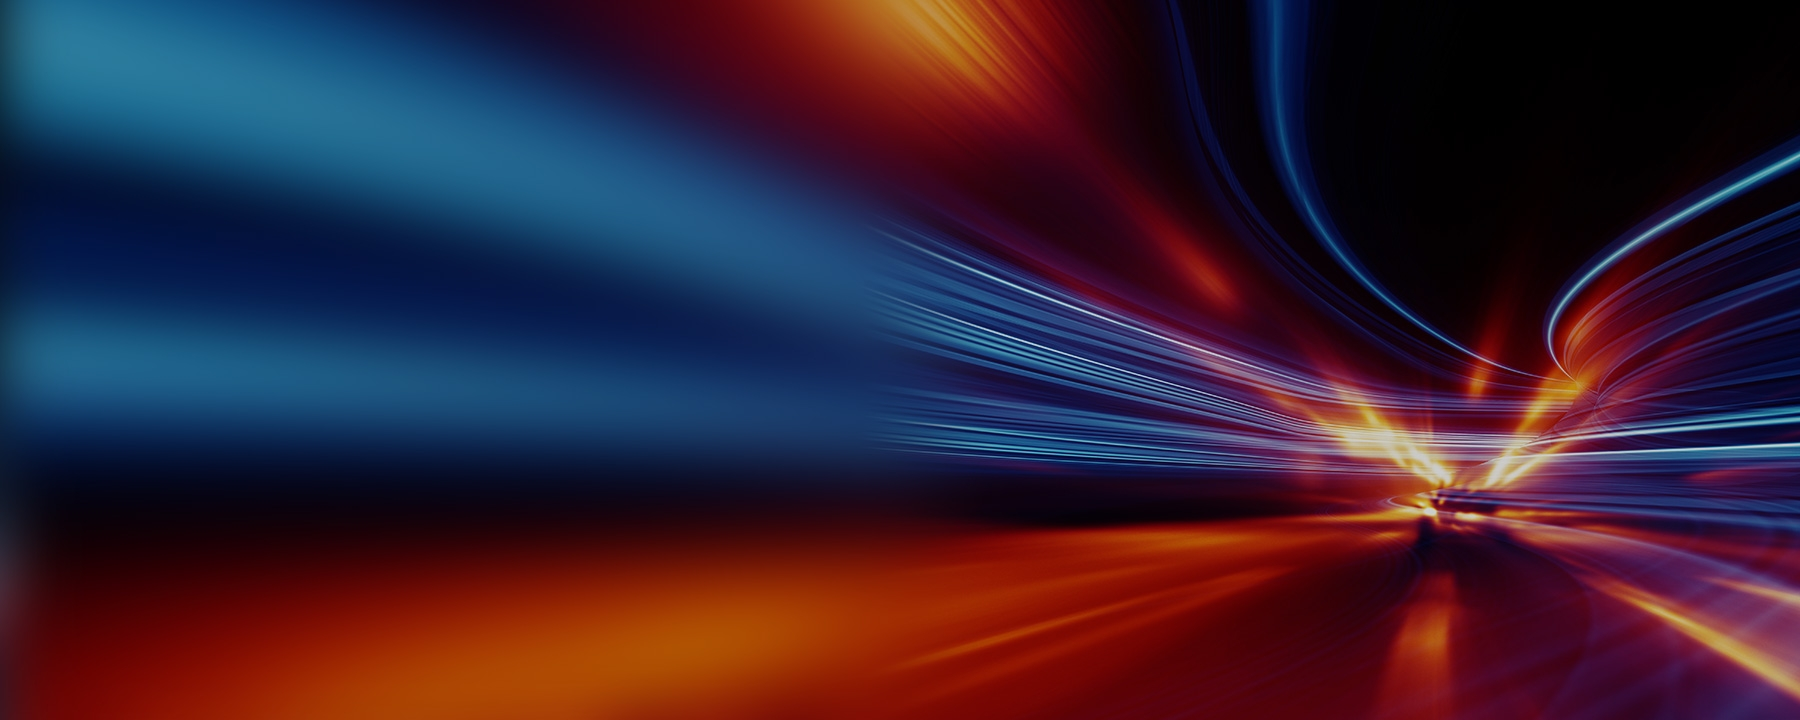 Blue and red motion blur